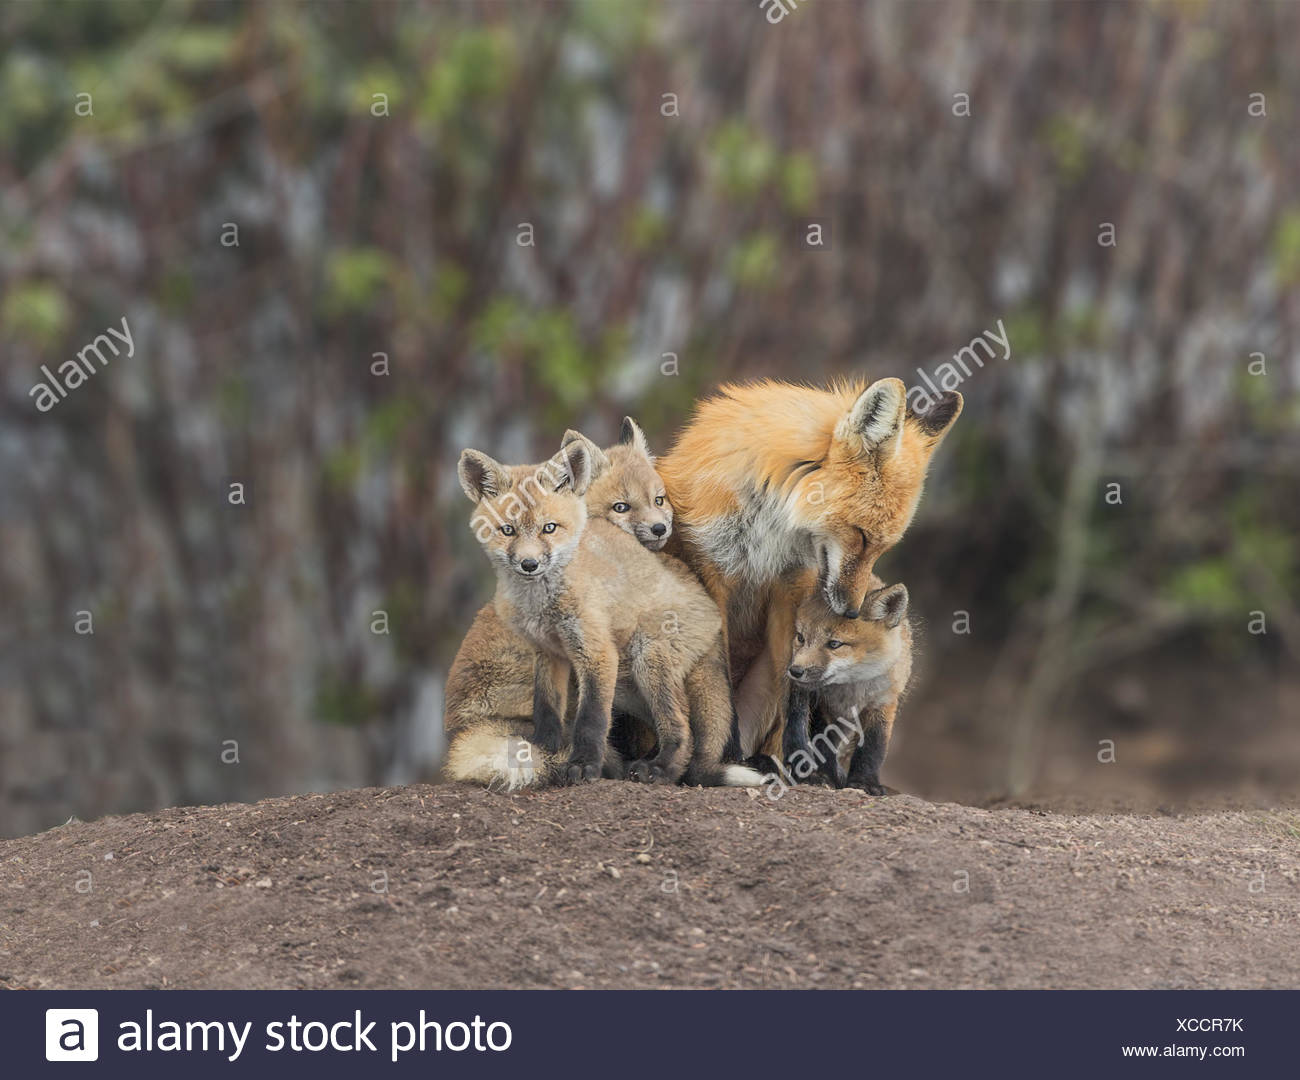 A group of red fox kits, Vulpes vulpes, with adult and pups bonding and grooming. - Stock Image